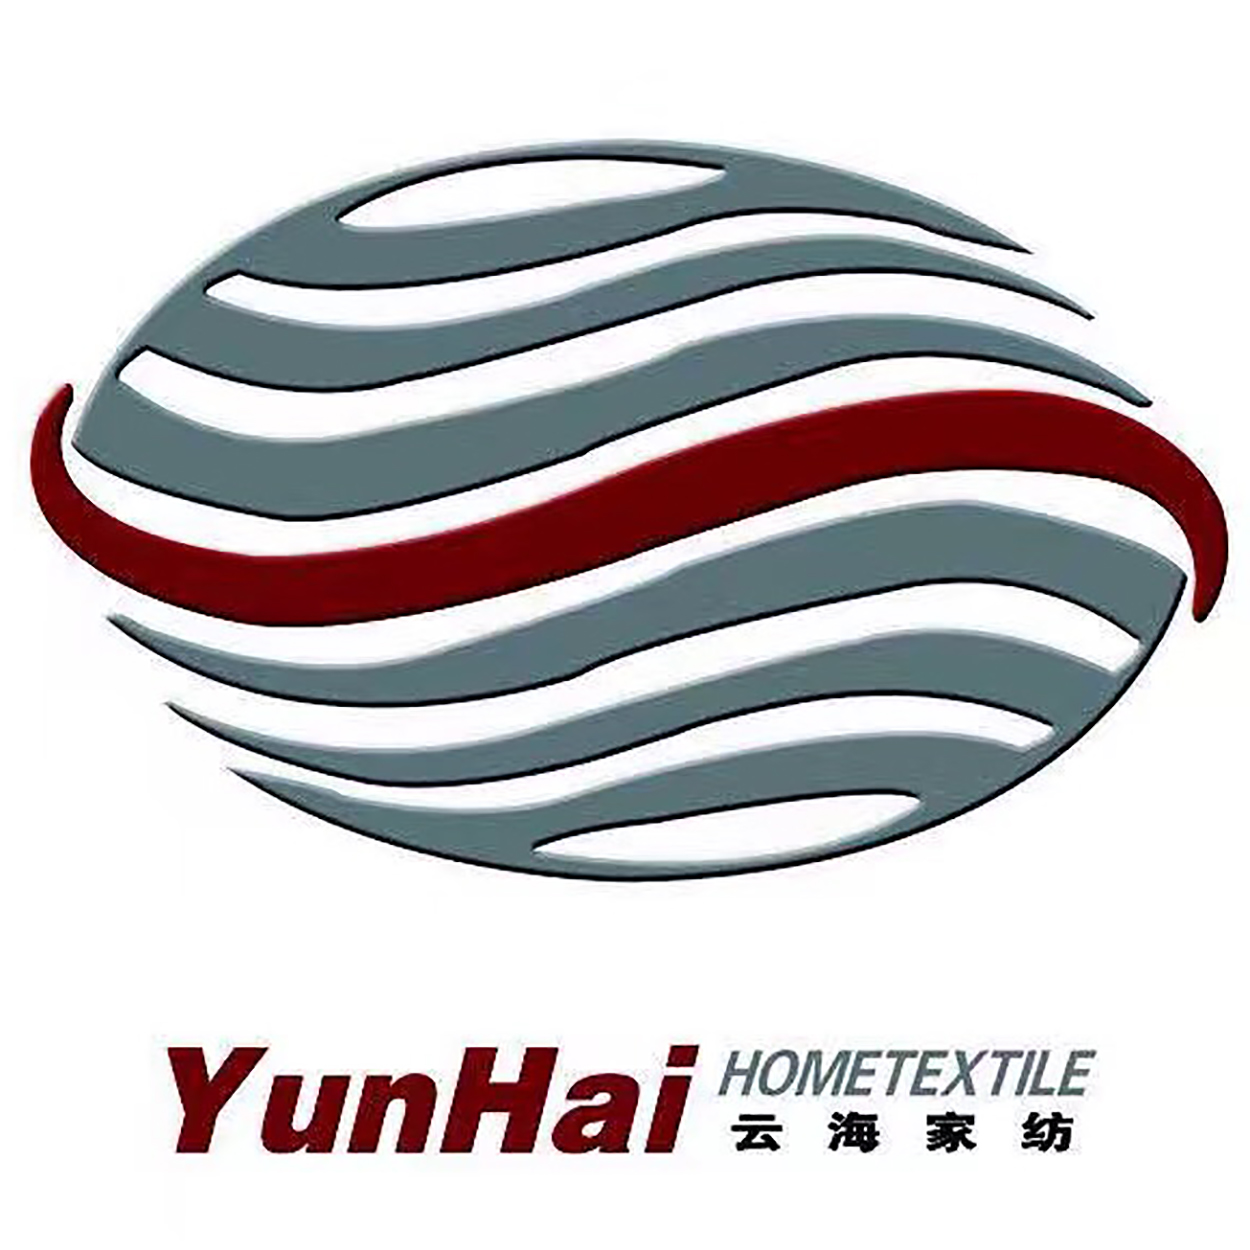 Zhaoyuan Yunhai Hometextile Co.,Ltd.